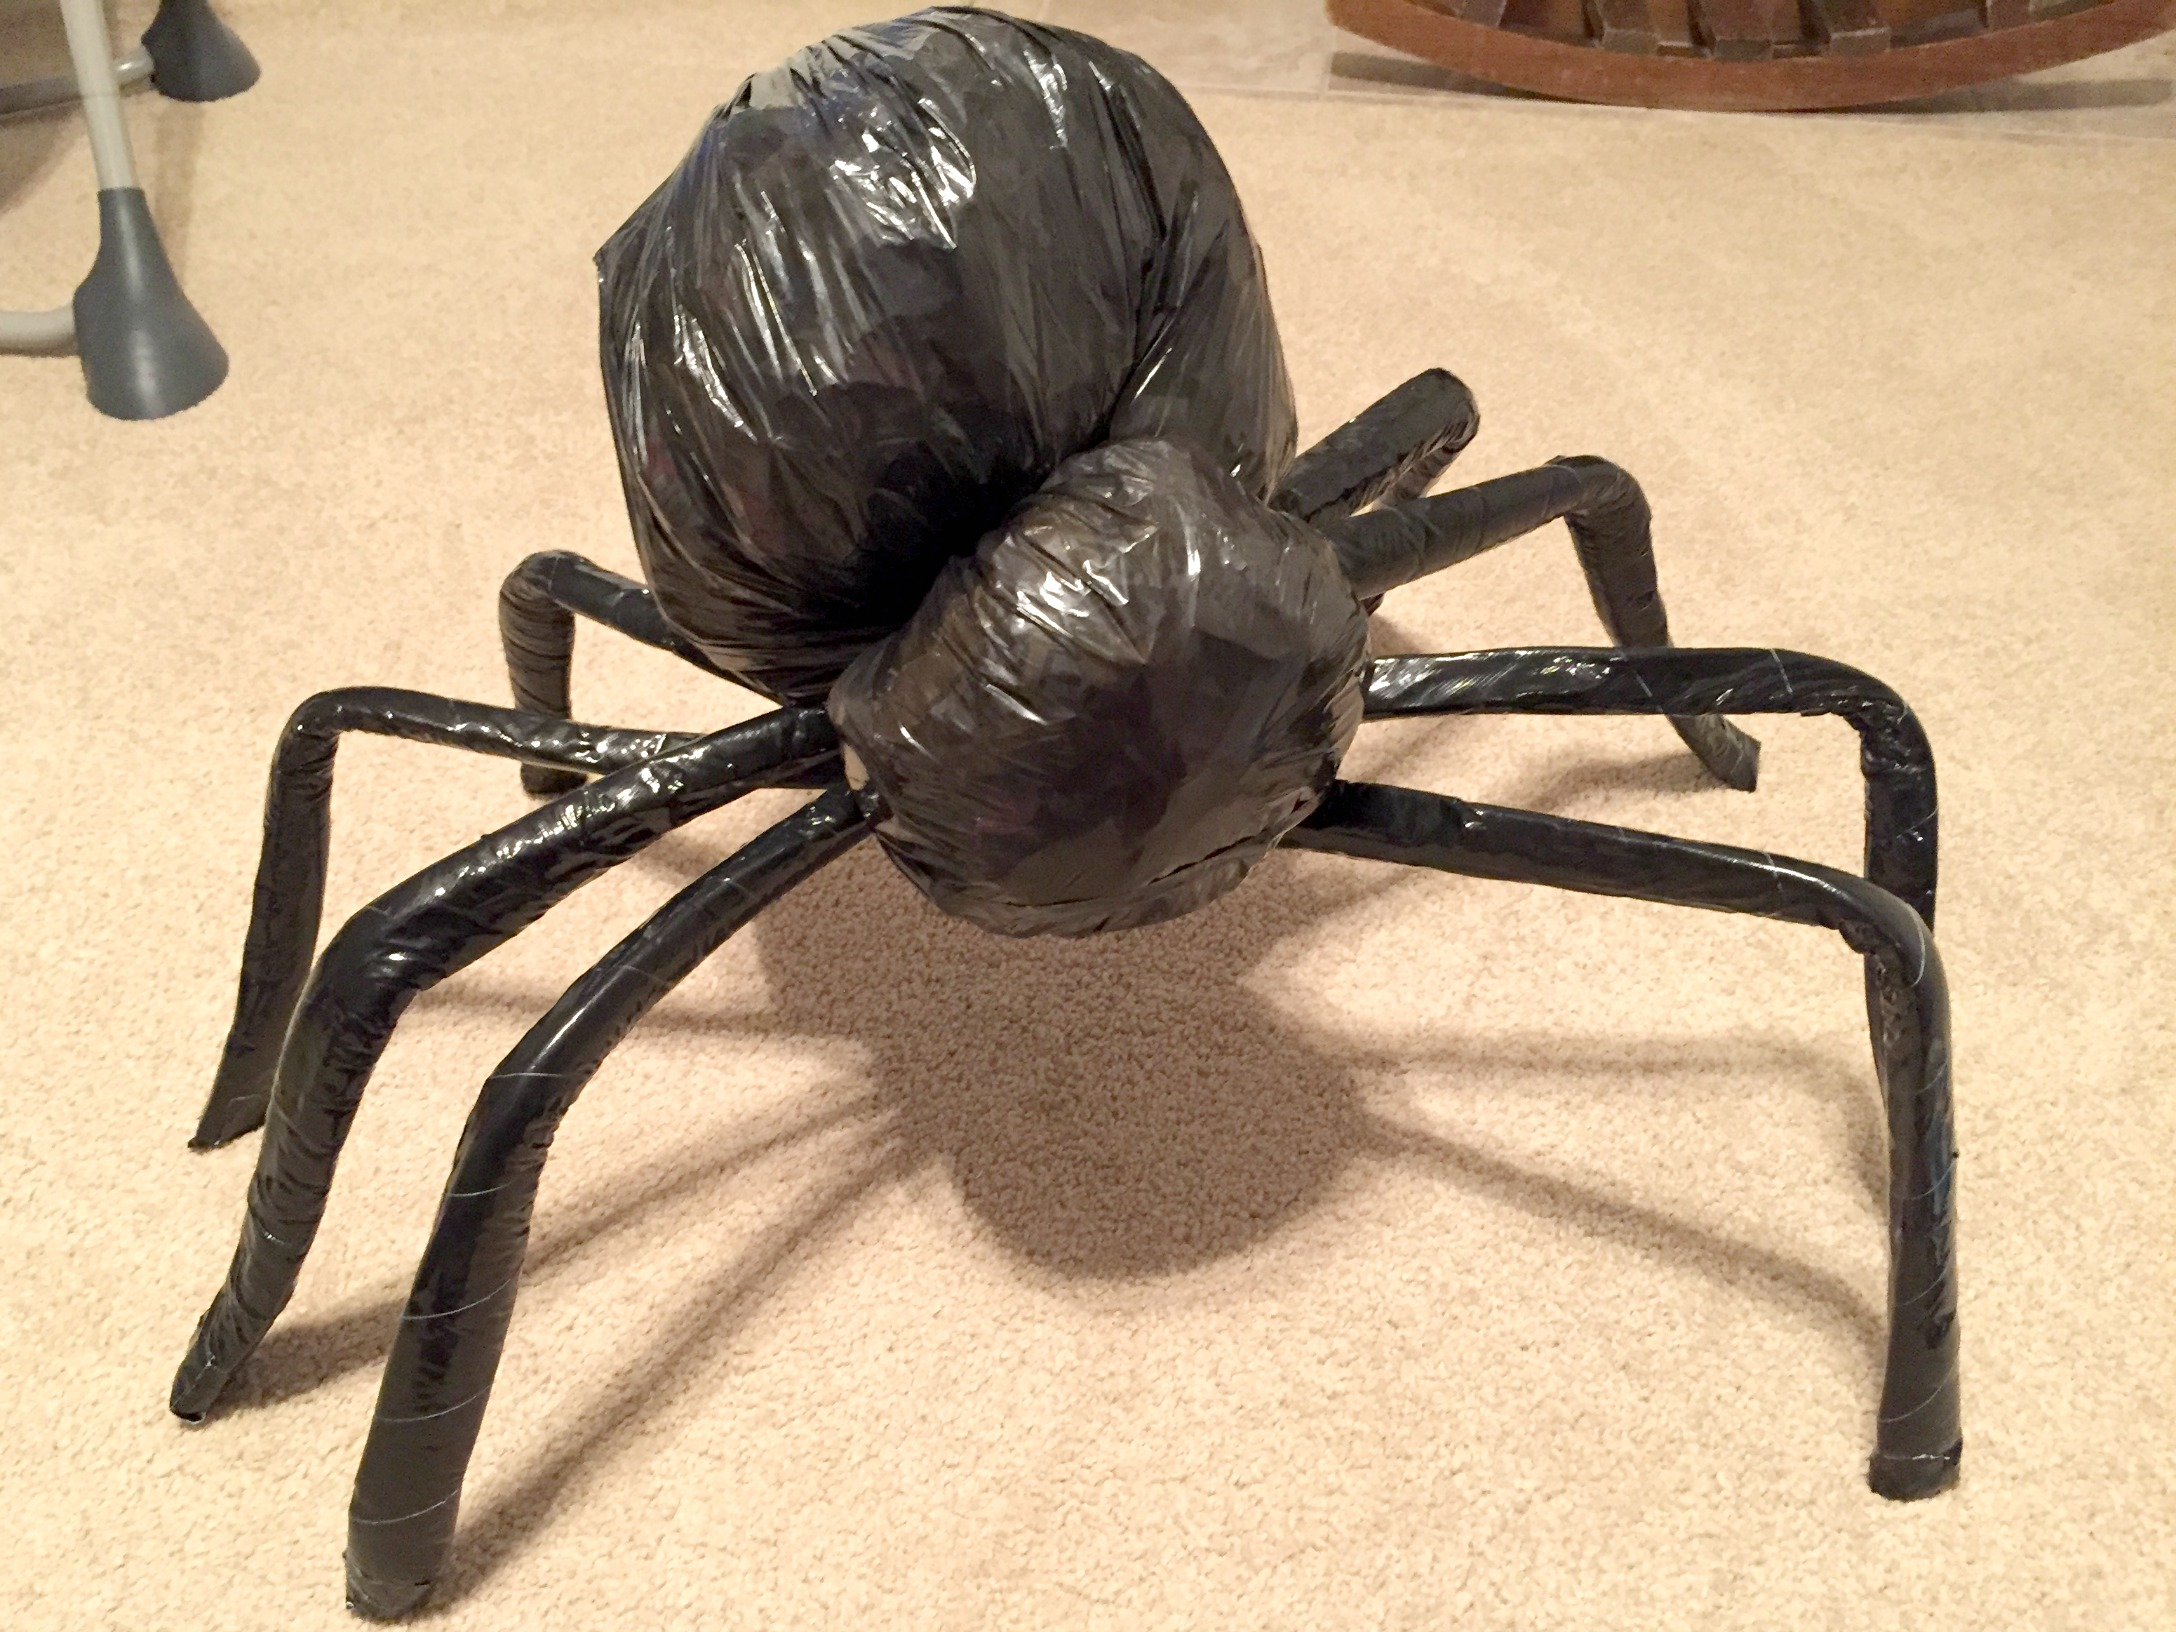 my toddler was totally terrified slight oversight so i figure it was a job well done creepy giant spideru2026 check